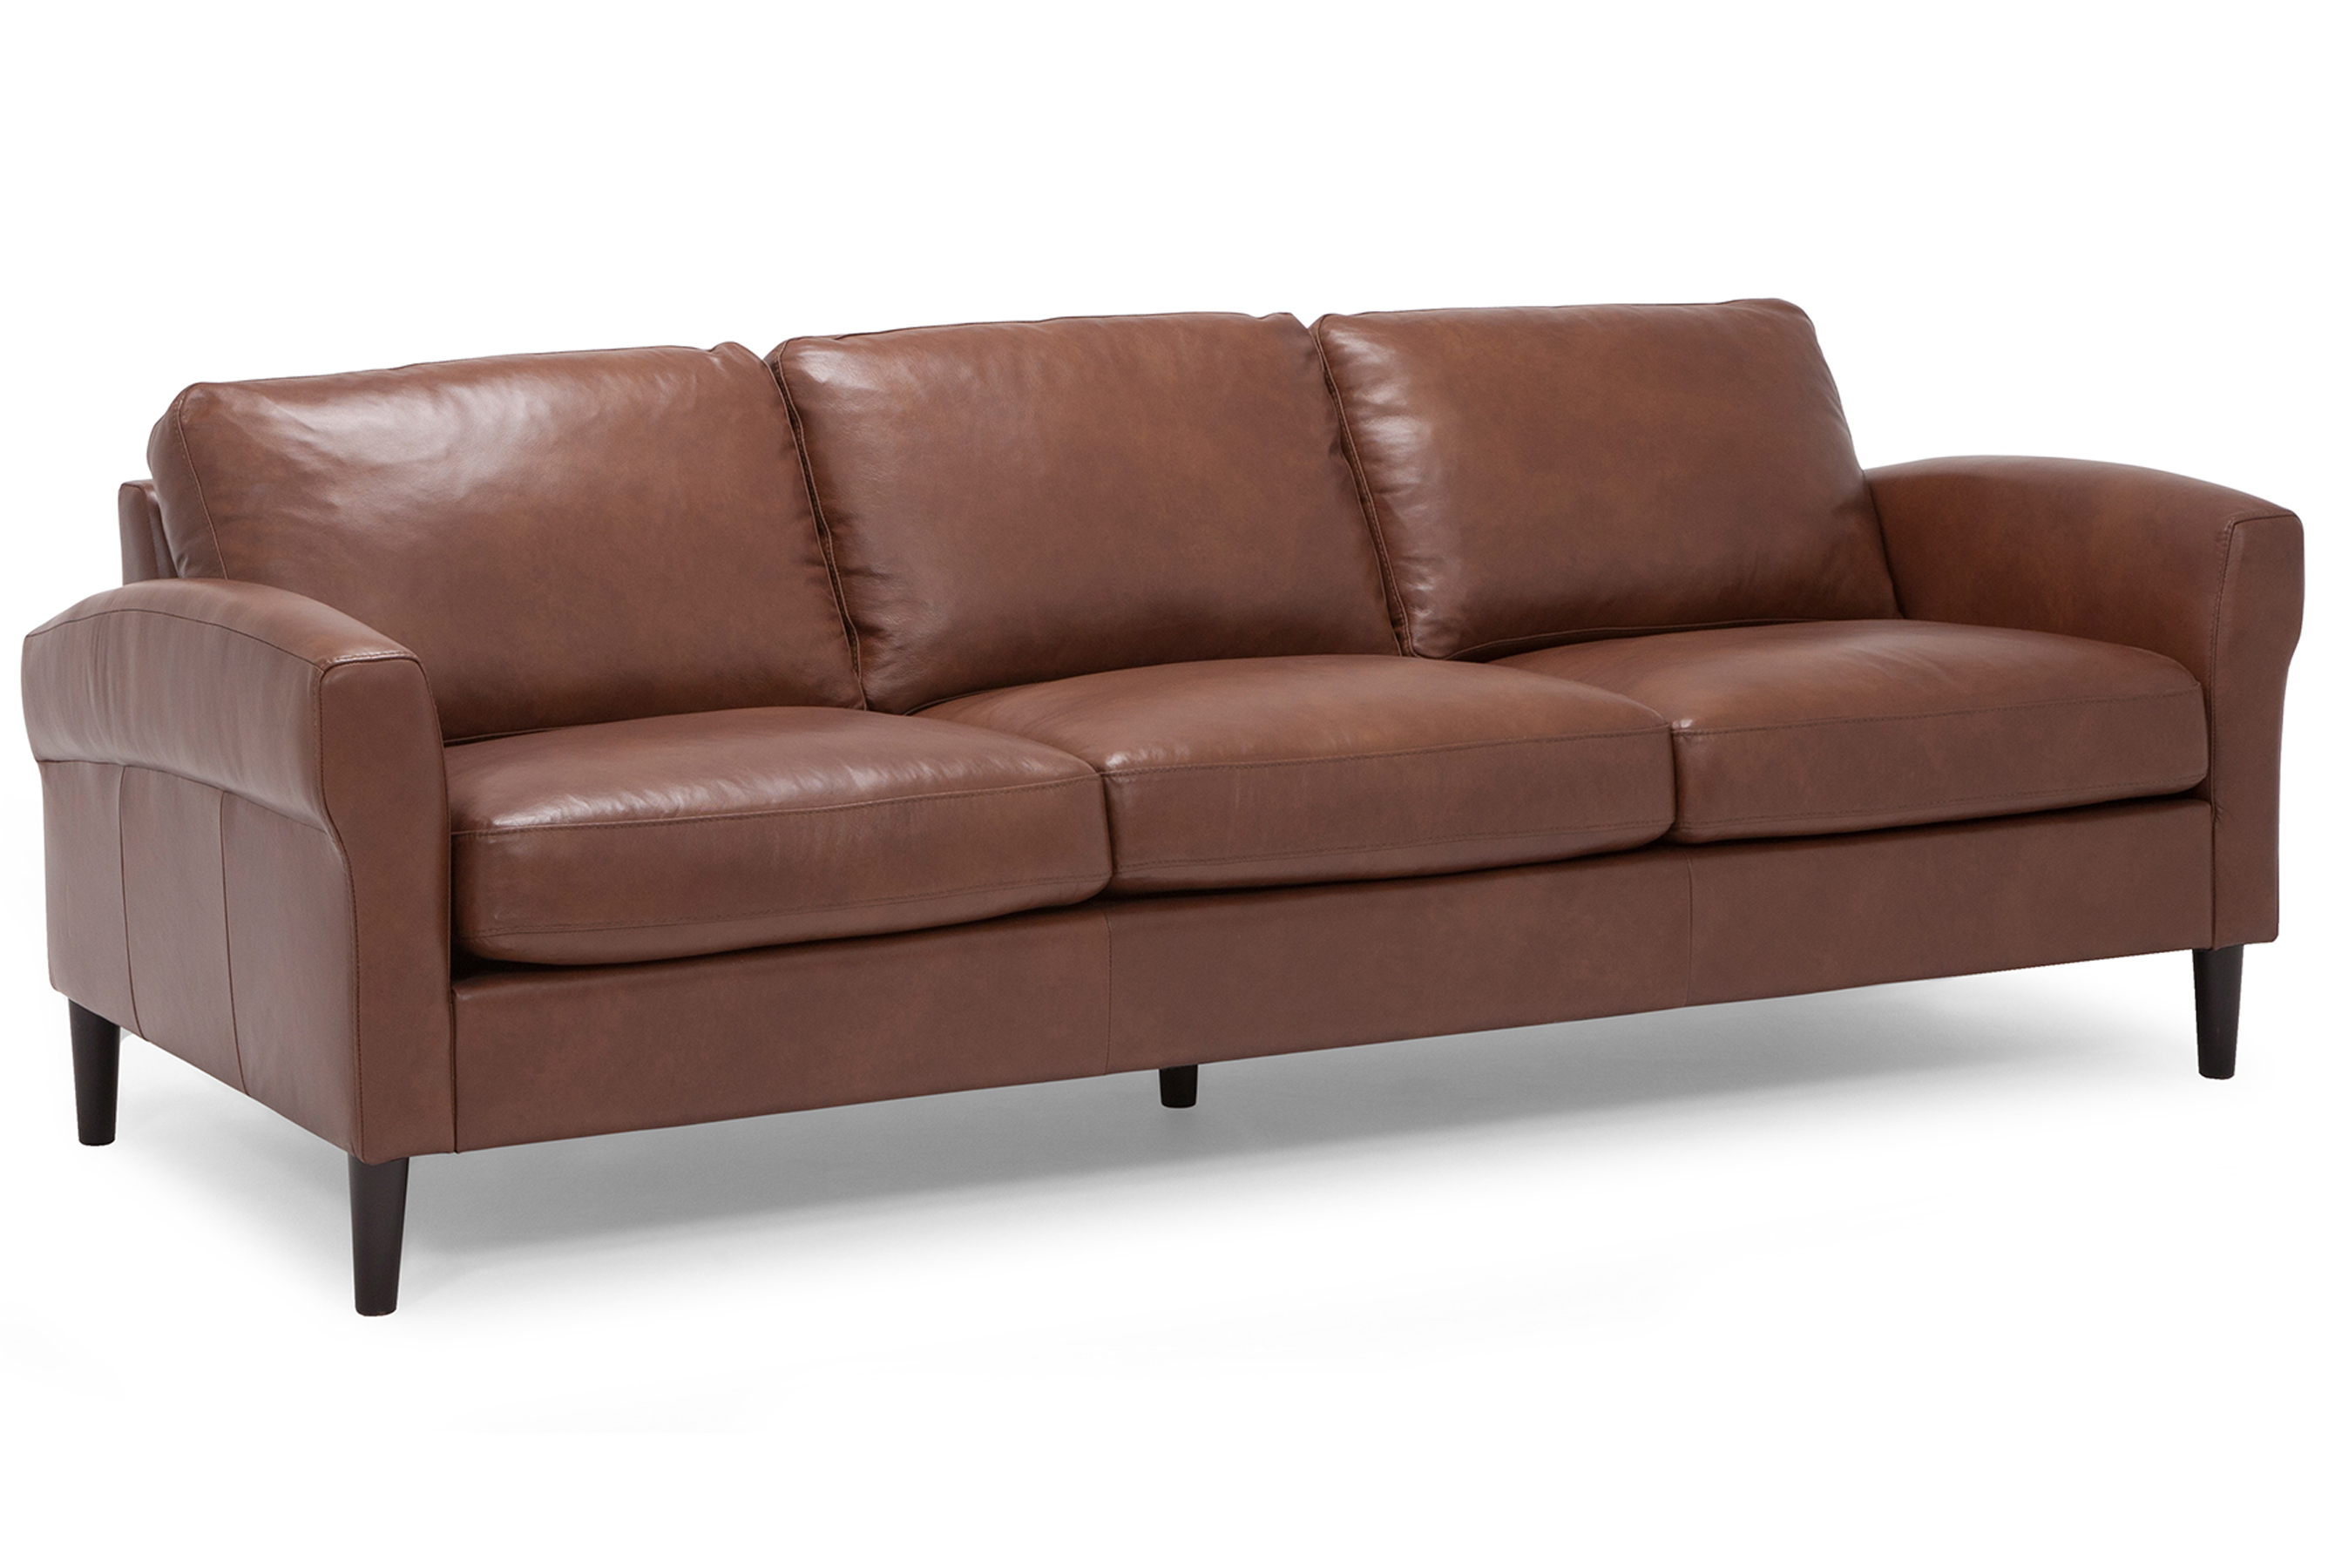 Majesty 100% Top Grain Leather Sofa in Bronco | Sofas and ...